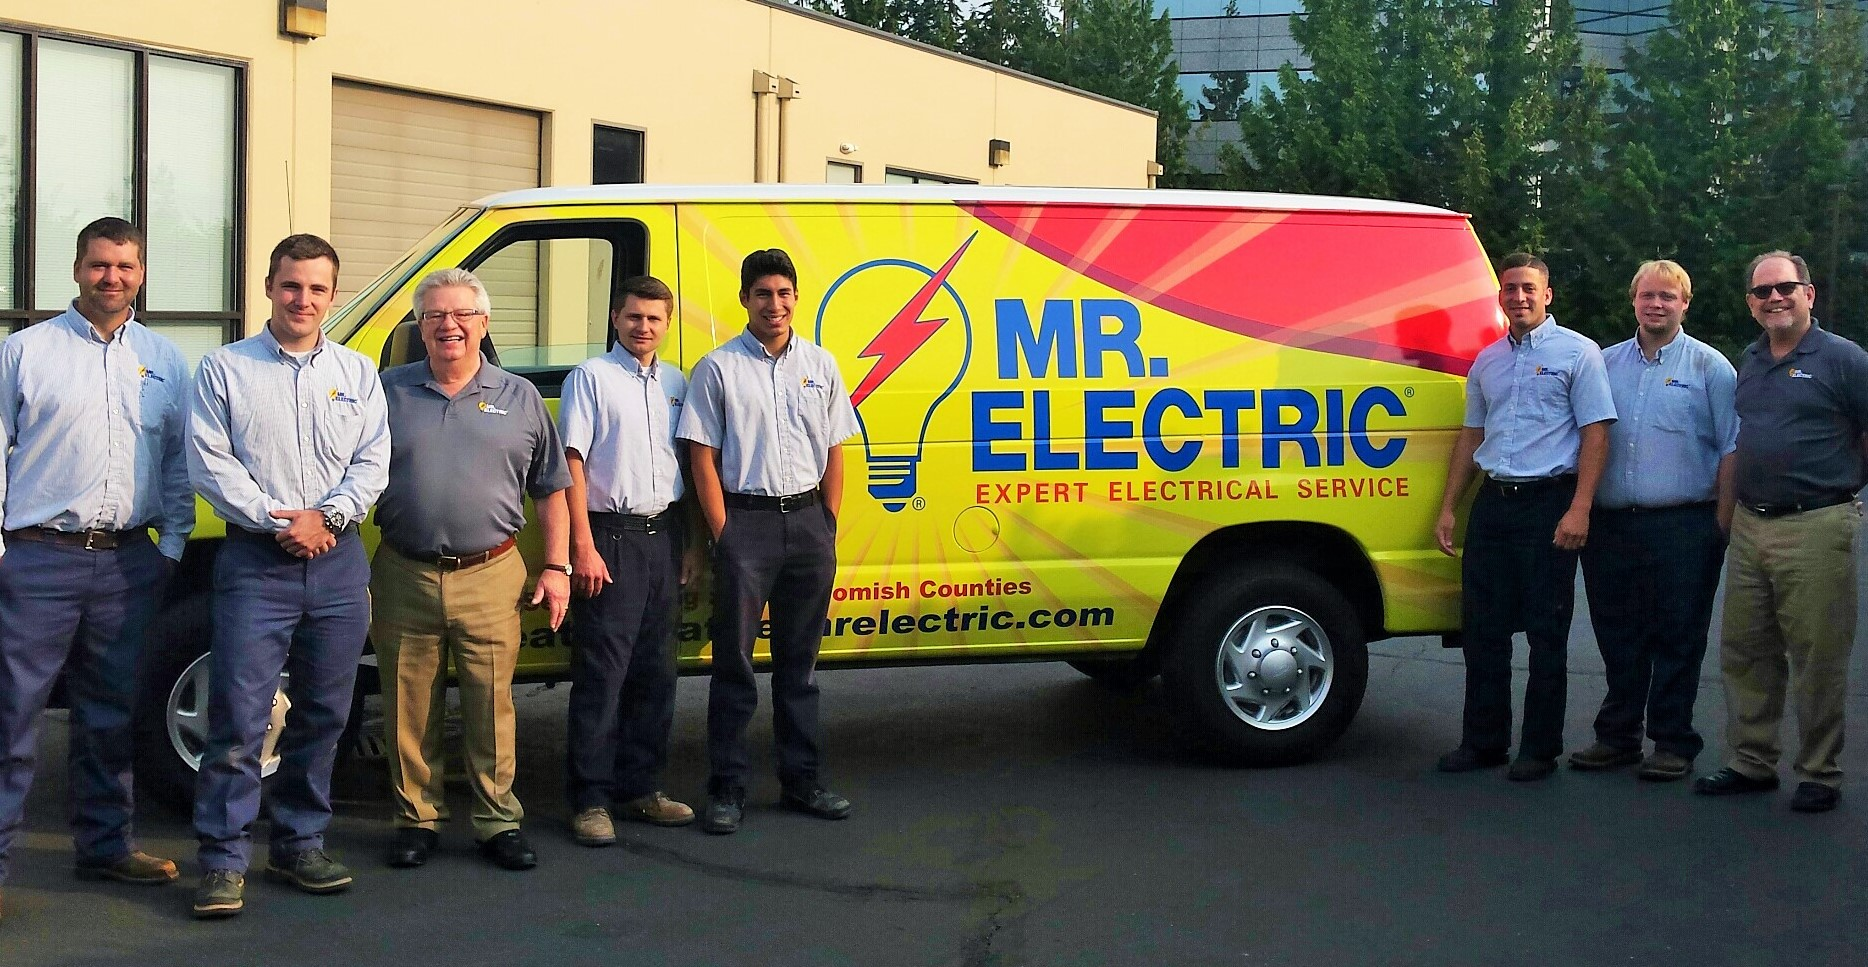 Mr Electric Service Professionals are here to serve you.